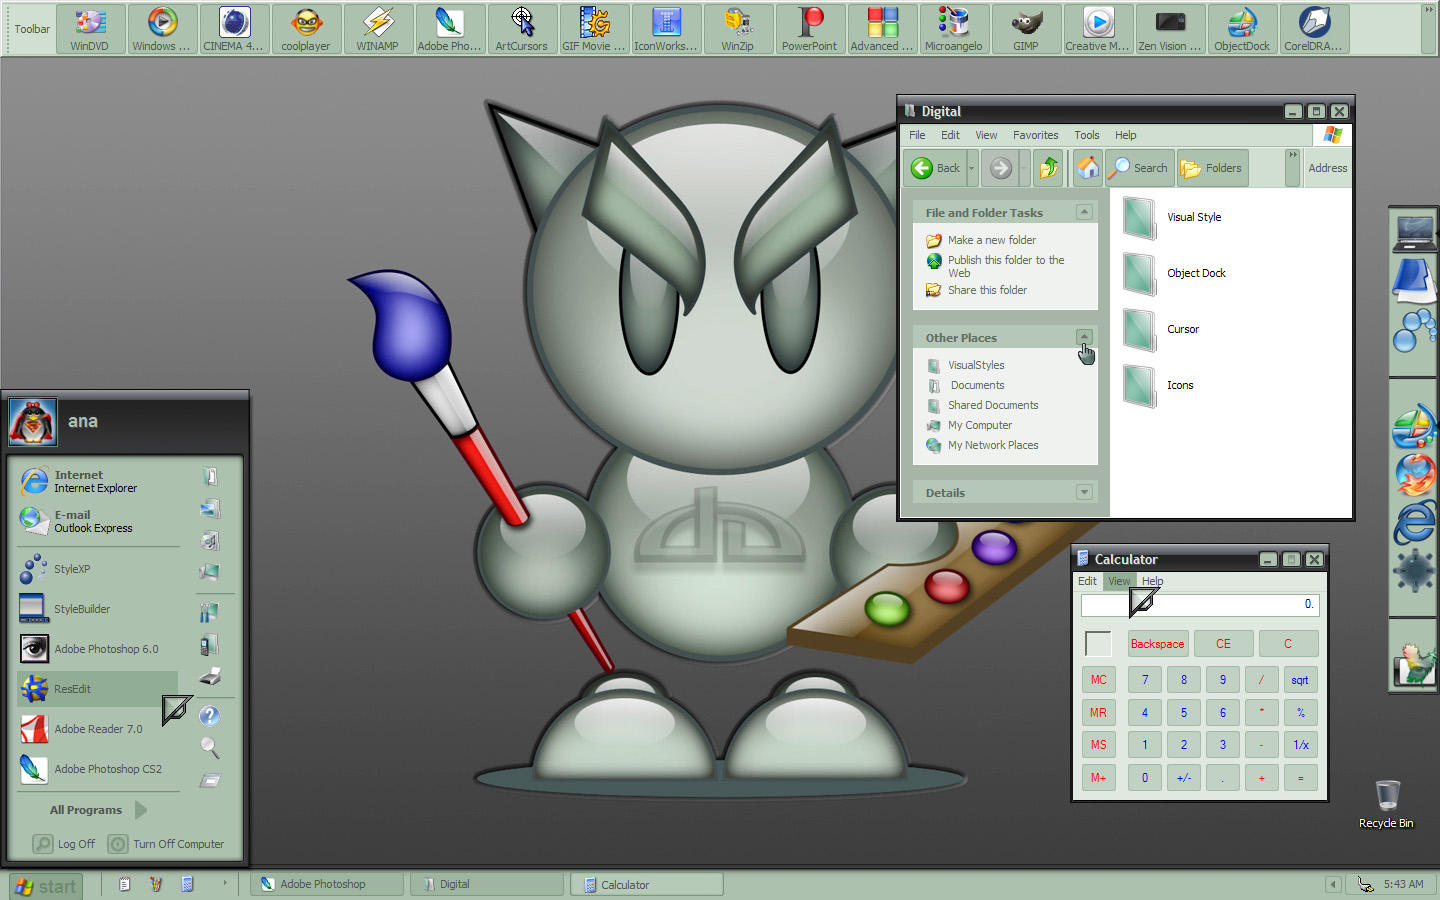 Digital VS by apbaron